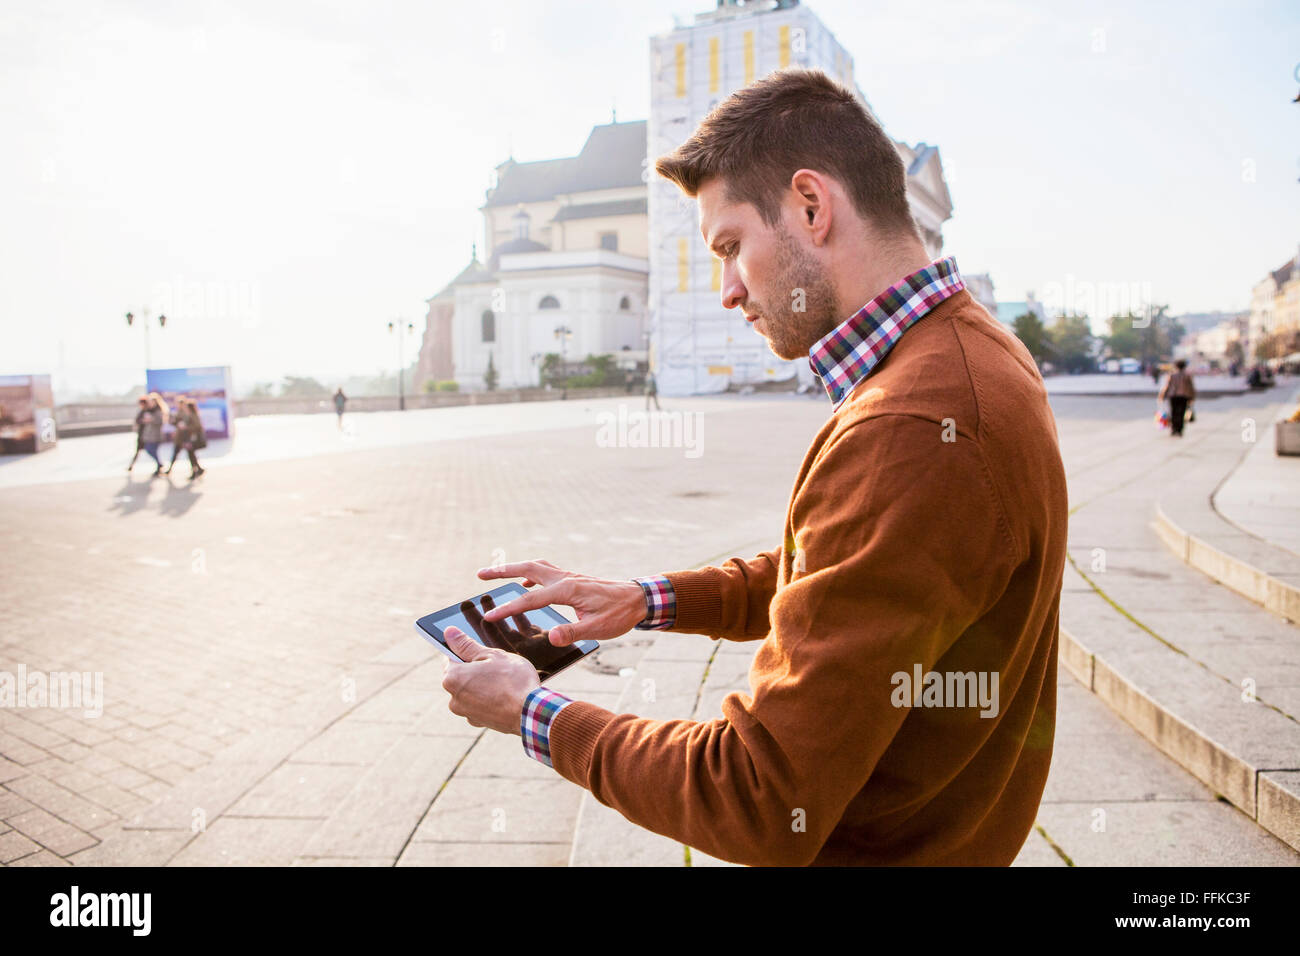 Man on a city break using touch screen - Stock Image